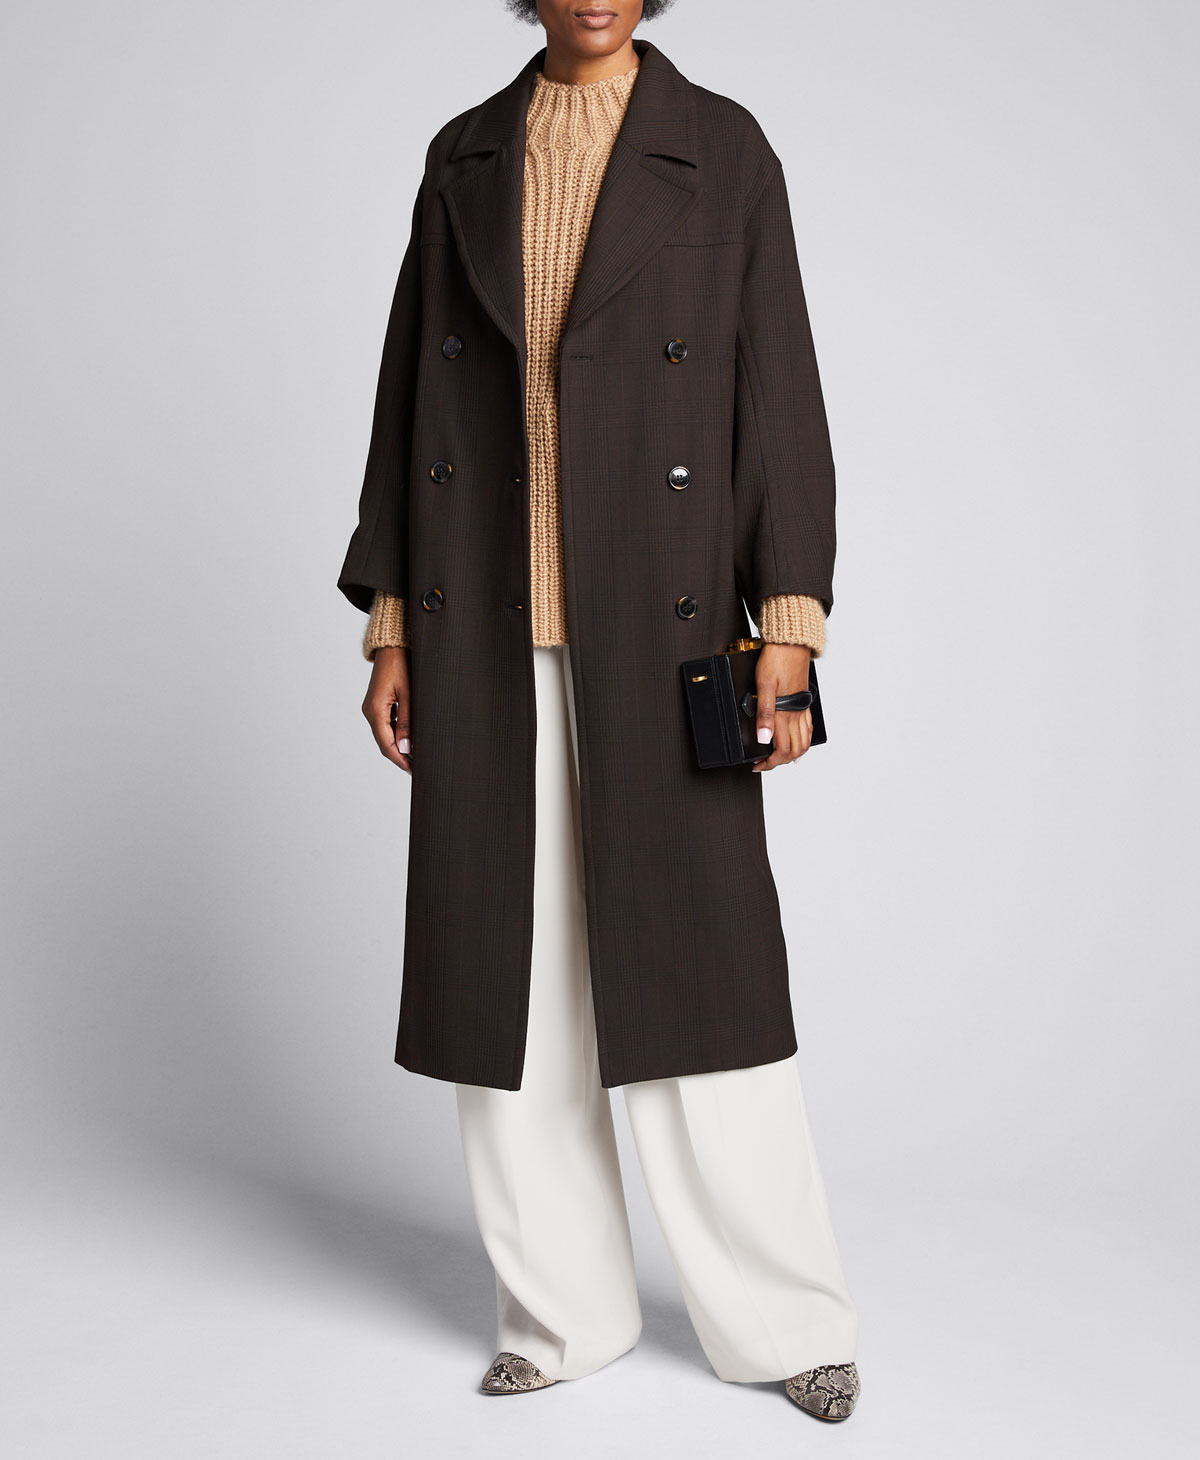 Ganni Coats DOUBLE-BREASTED CHECK LONG COAT